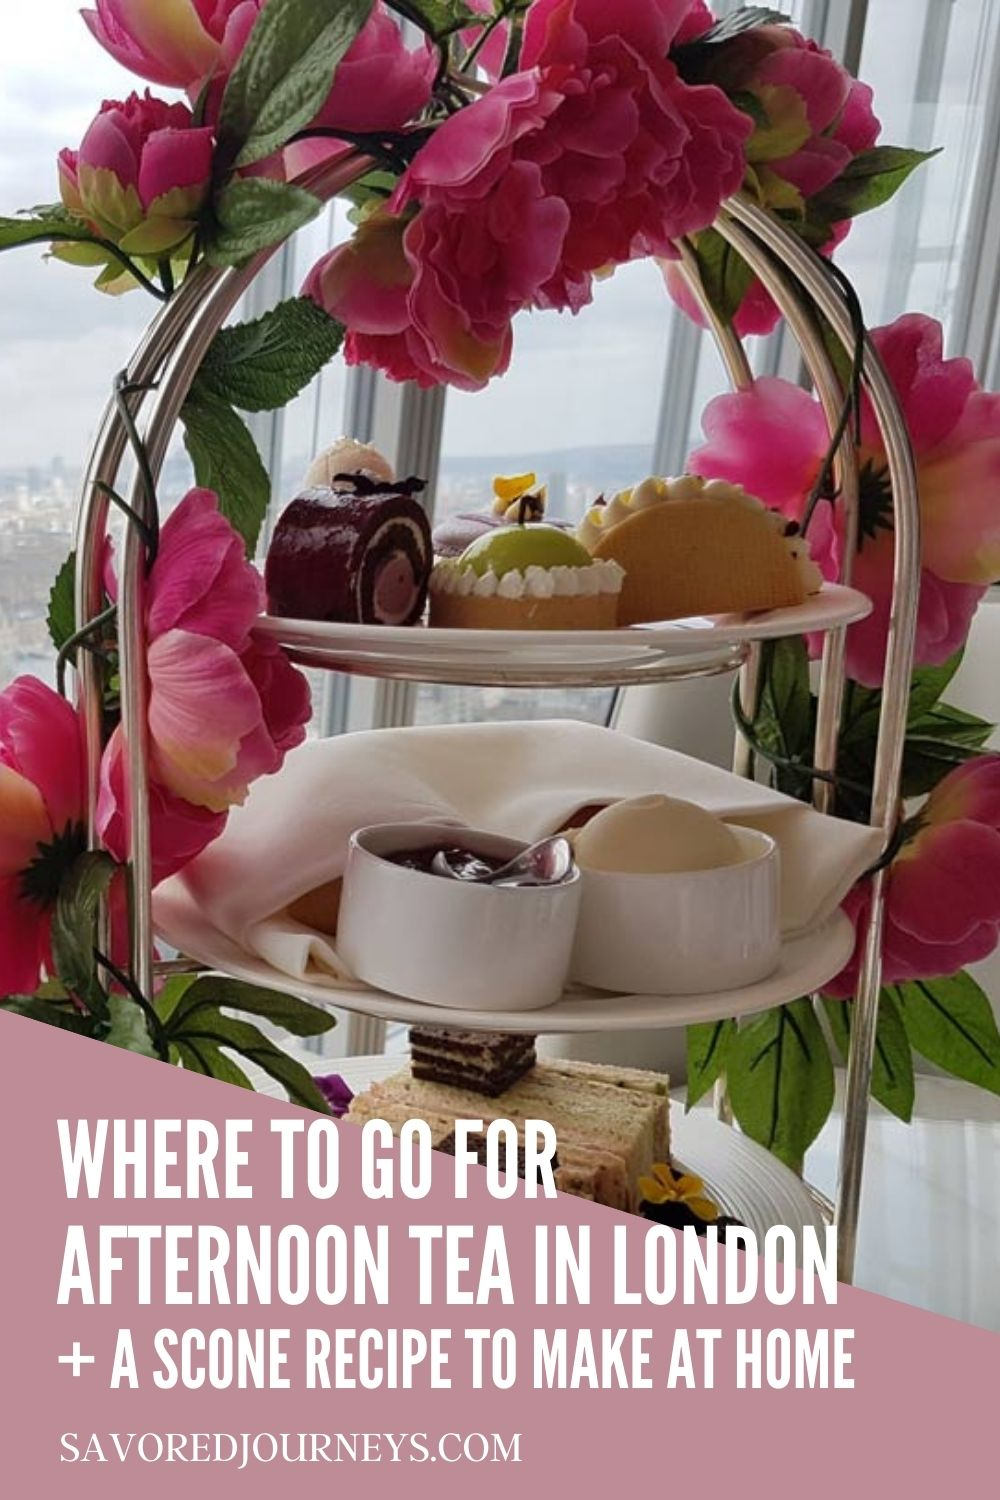 All About Afternoon Tea + Where to Go in London